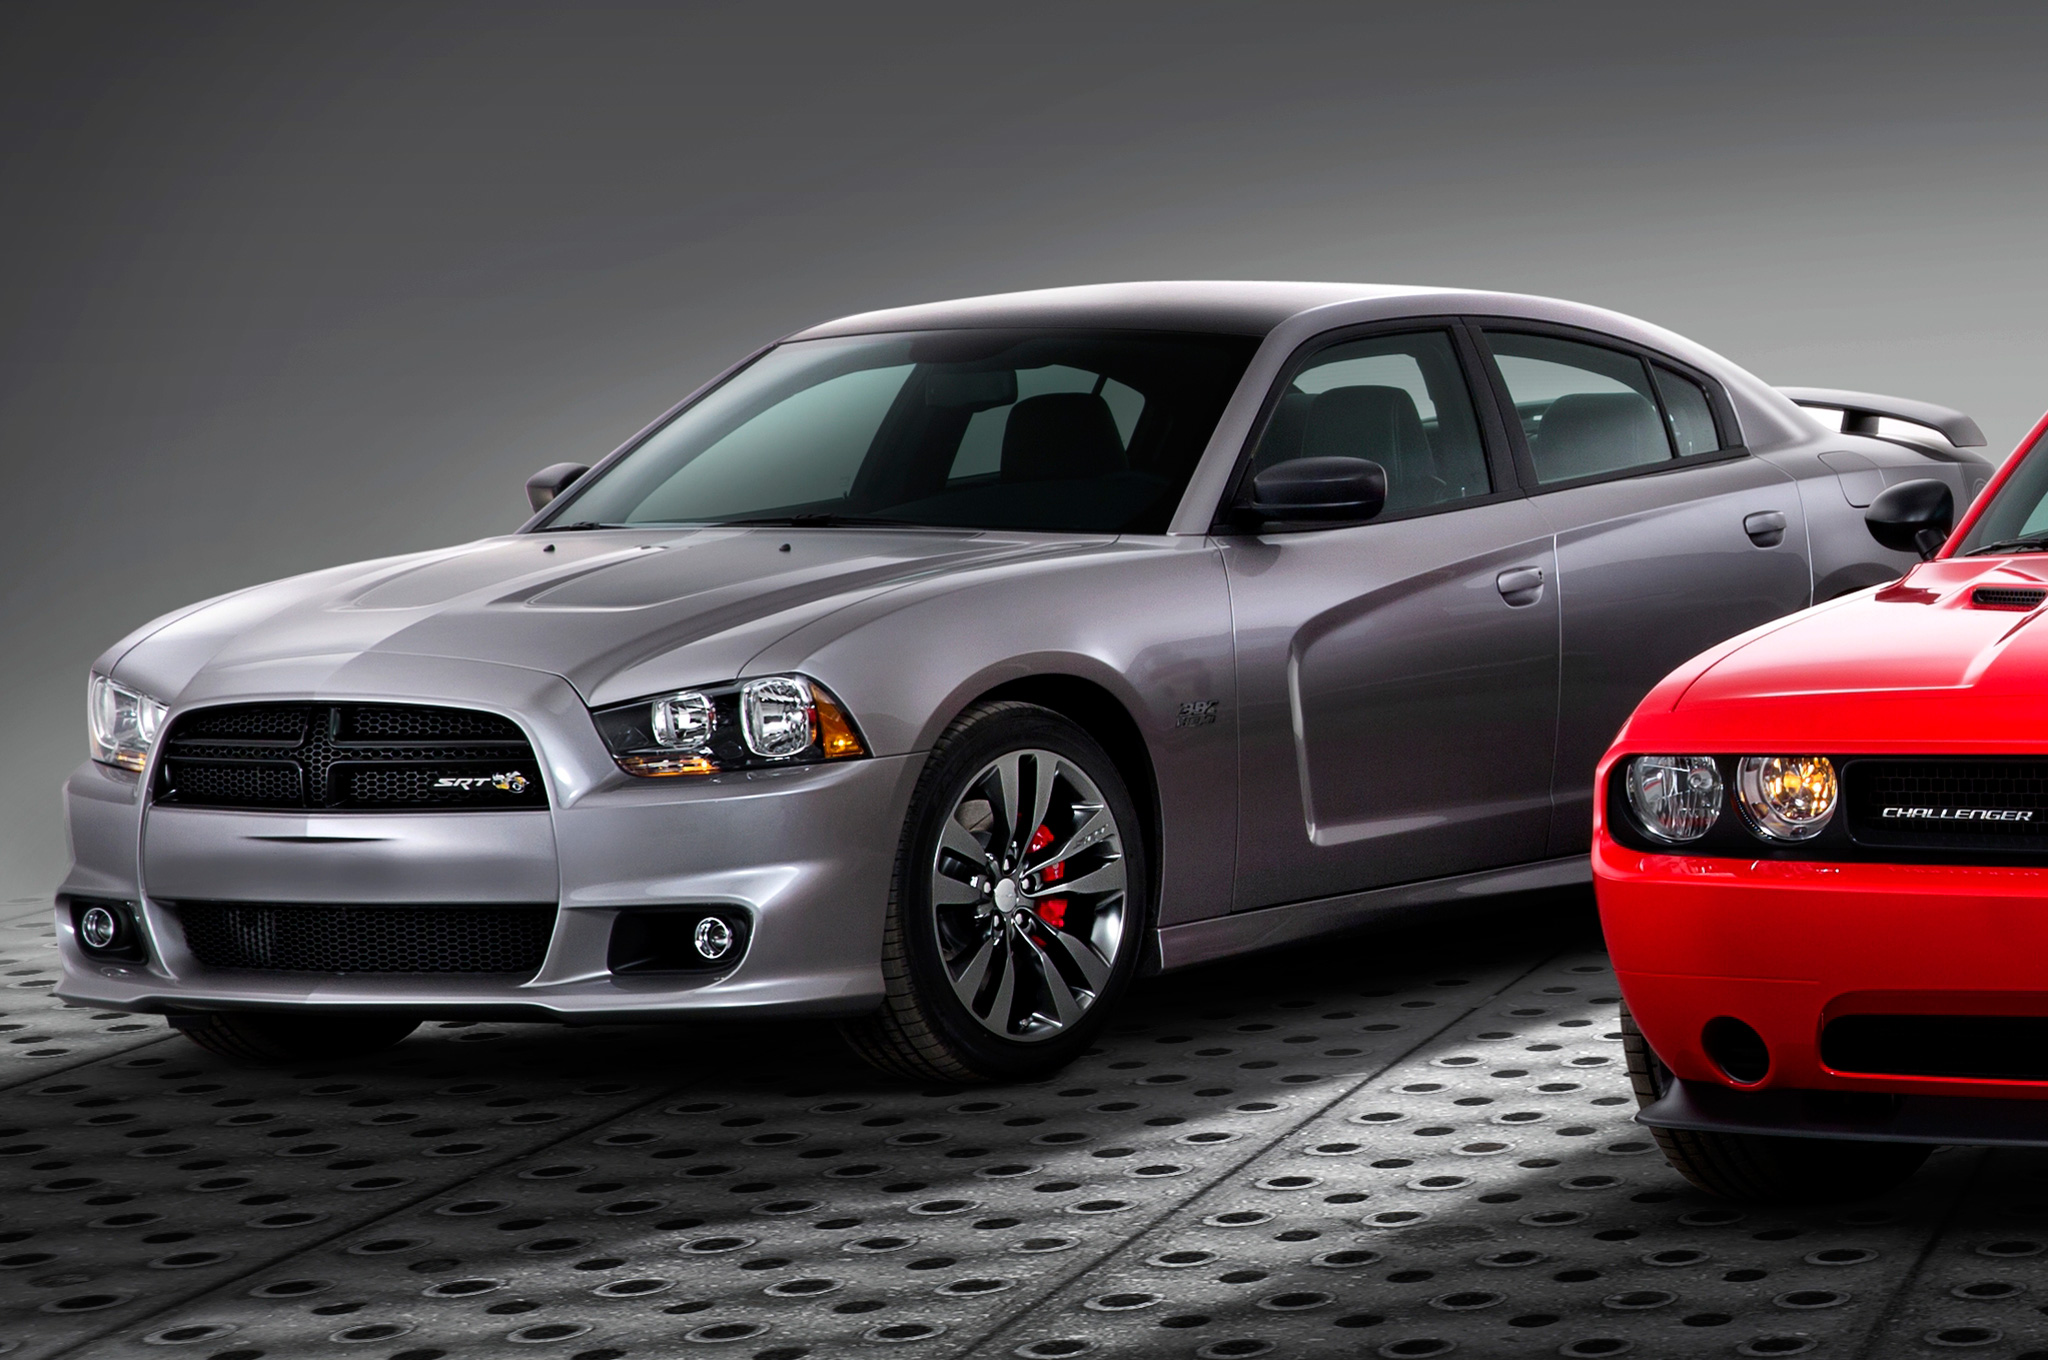 2014 Dodge Charger #24